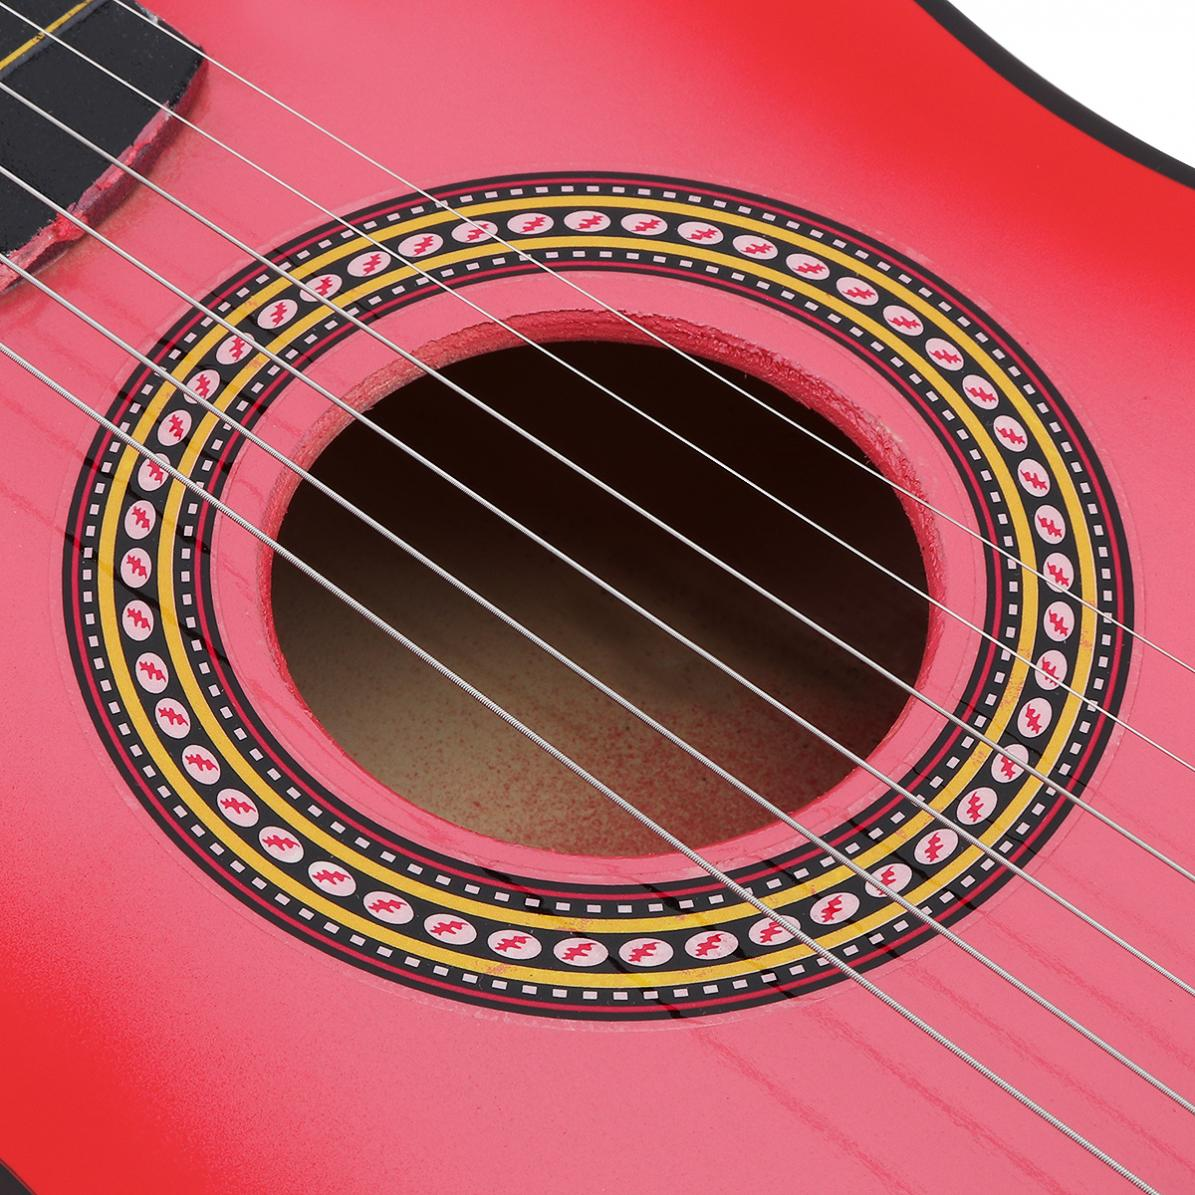 23 Inch Black Basswood Acoustic Guitar With Guitar Pick Wire Strings Musical Instrument enlarge